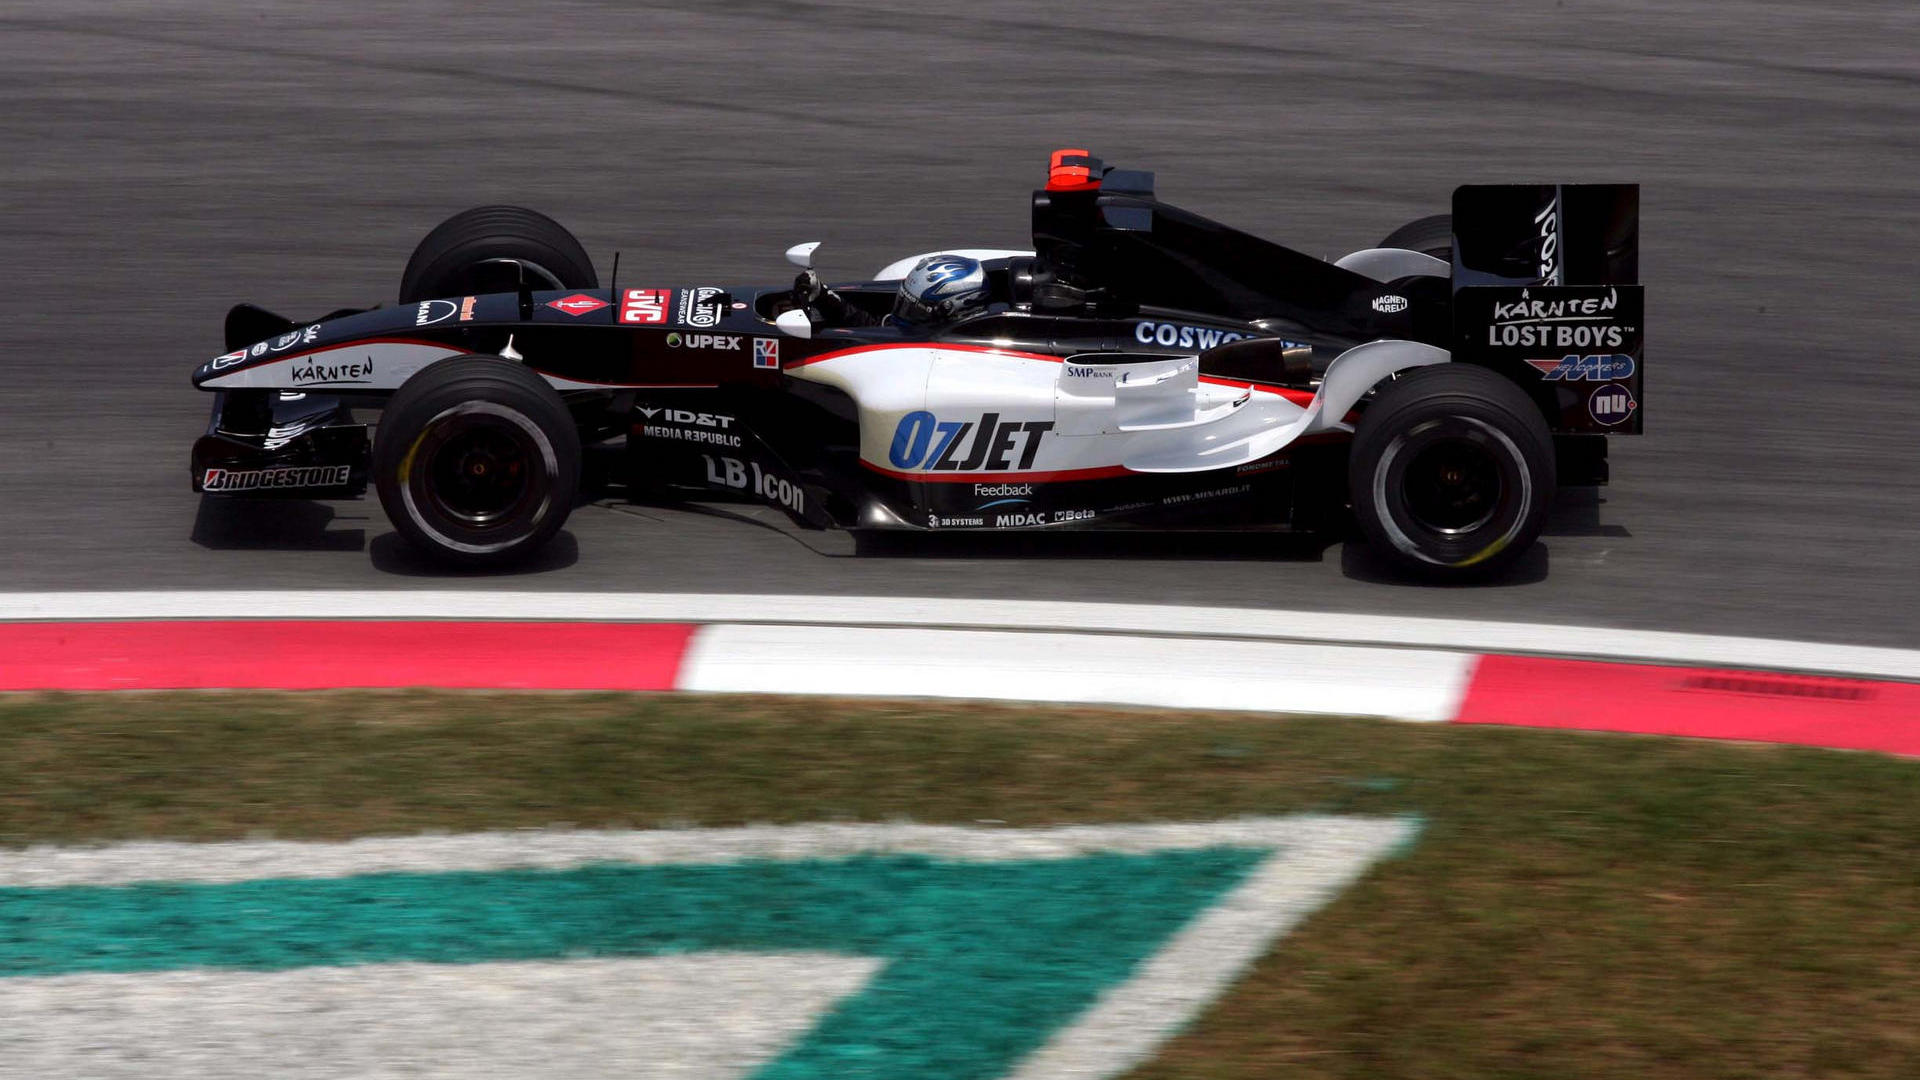 Minardi f1 2005 - foto by F1-Fansite.com